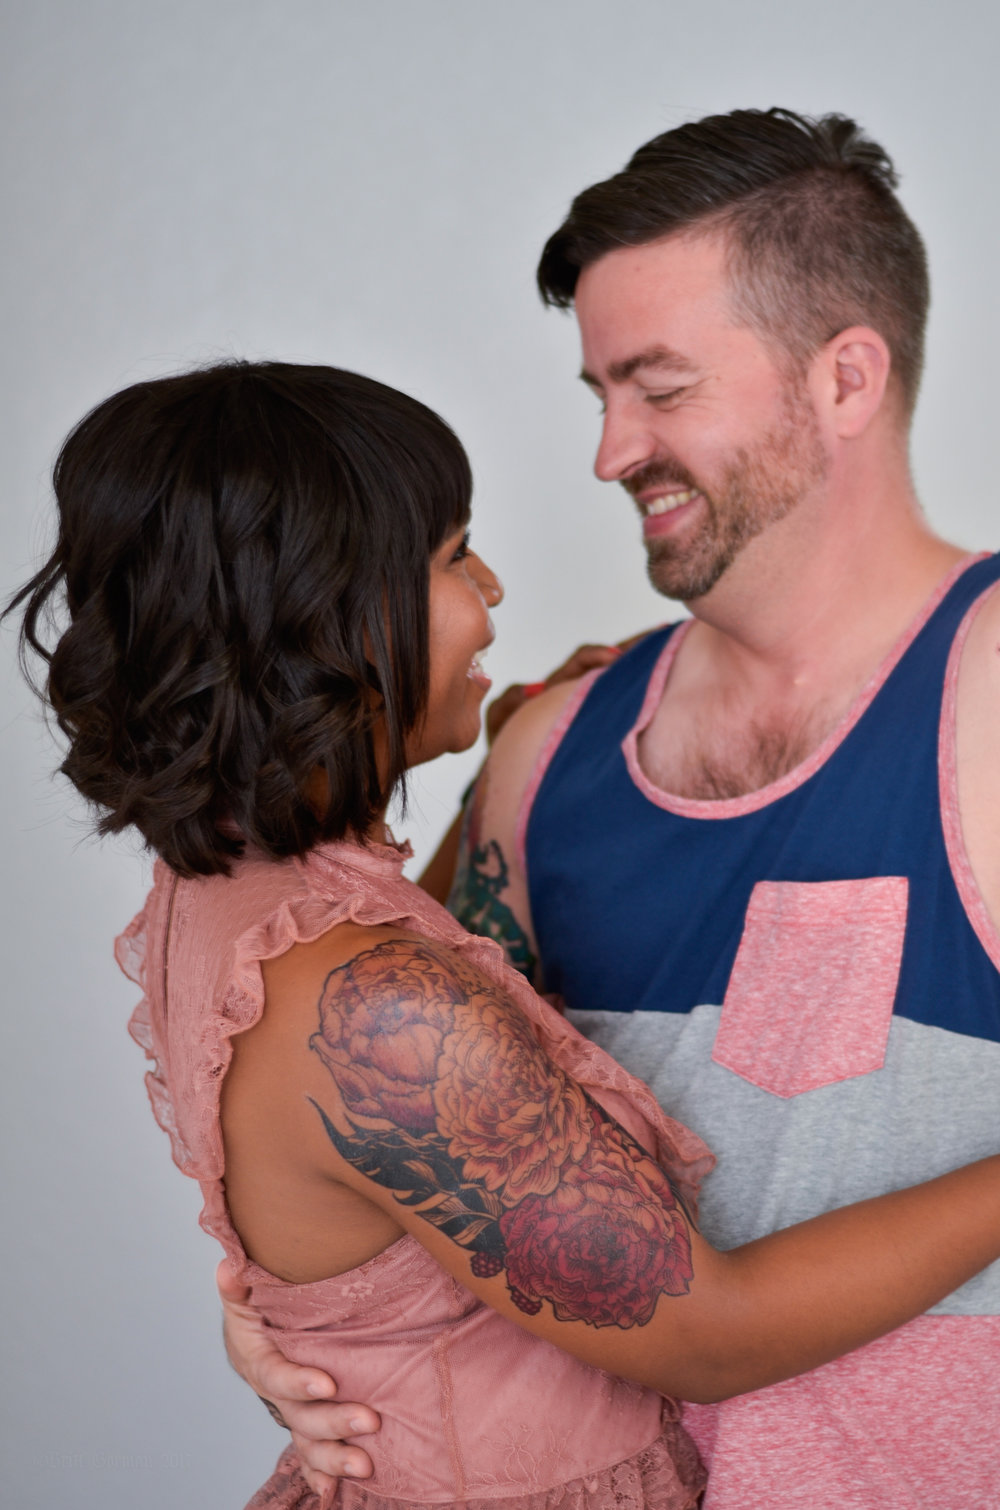 seventh skin temporary tattoos photographed on interracial couple by brittany gorman makeup by kim baker beauty san jose california makeup artist